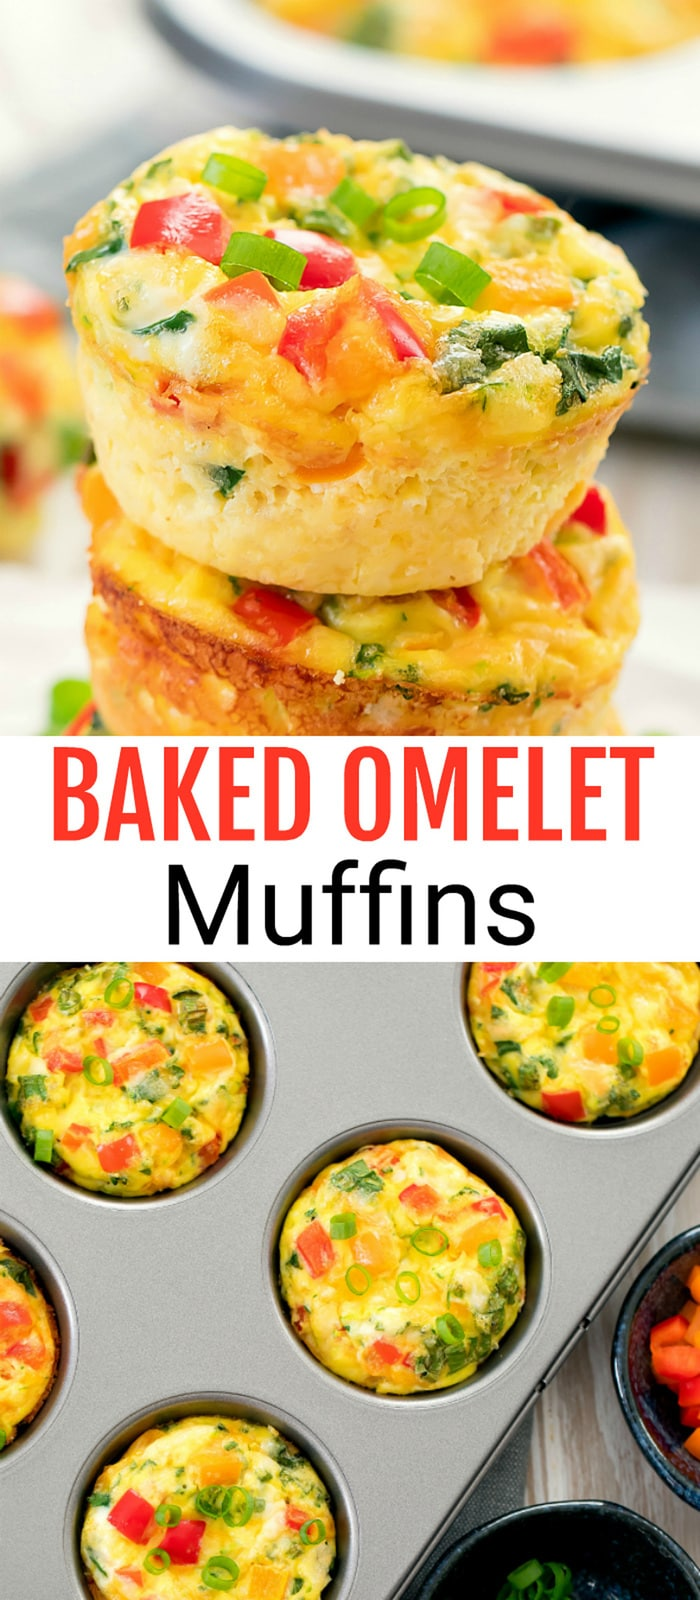 Baked Breakfast Omelet Muffins. These egg muffins are loaded with omelet ingredients. They are easy to make, portable, and store well for meal prep.